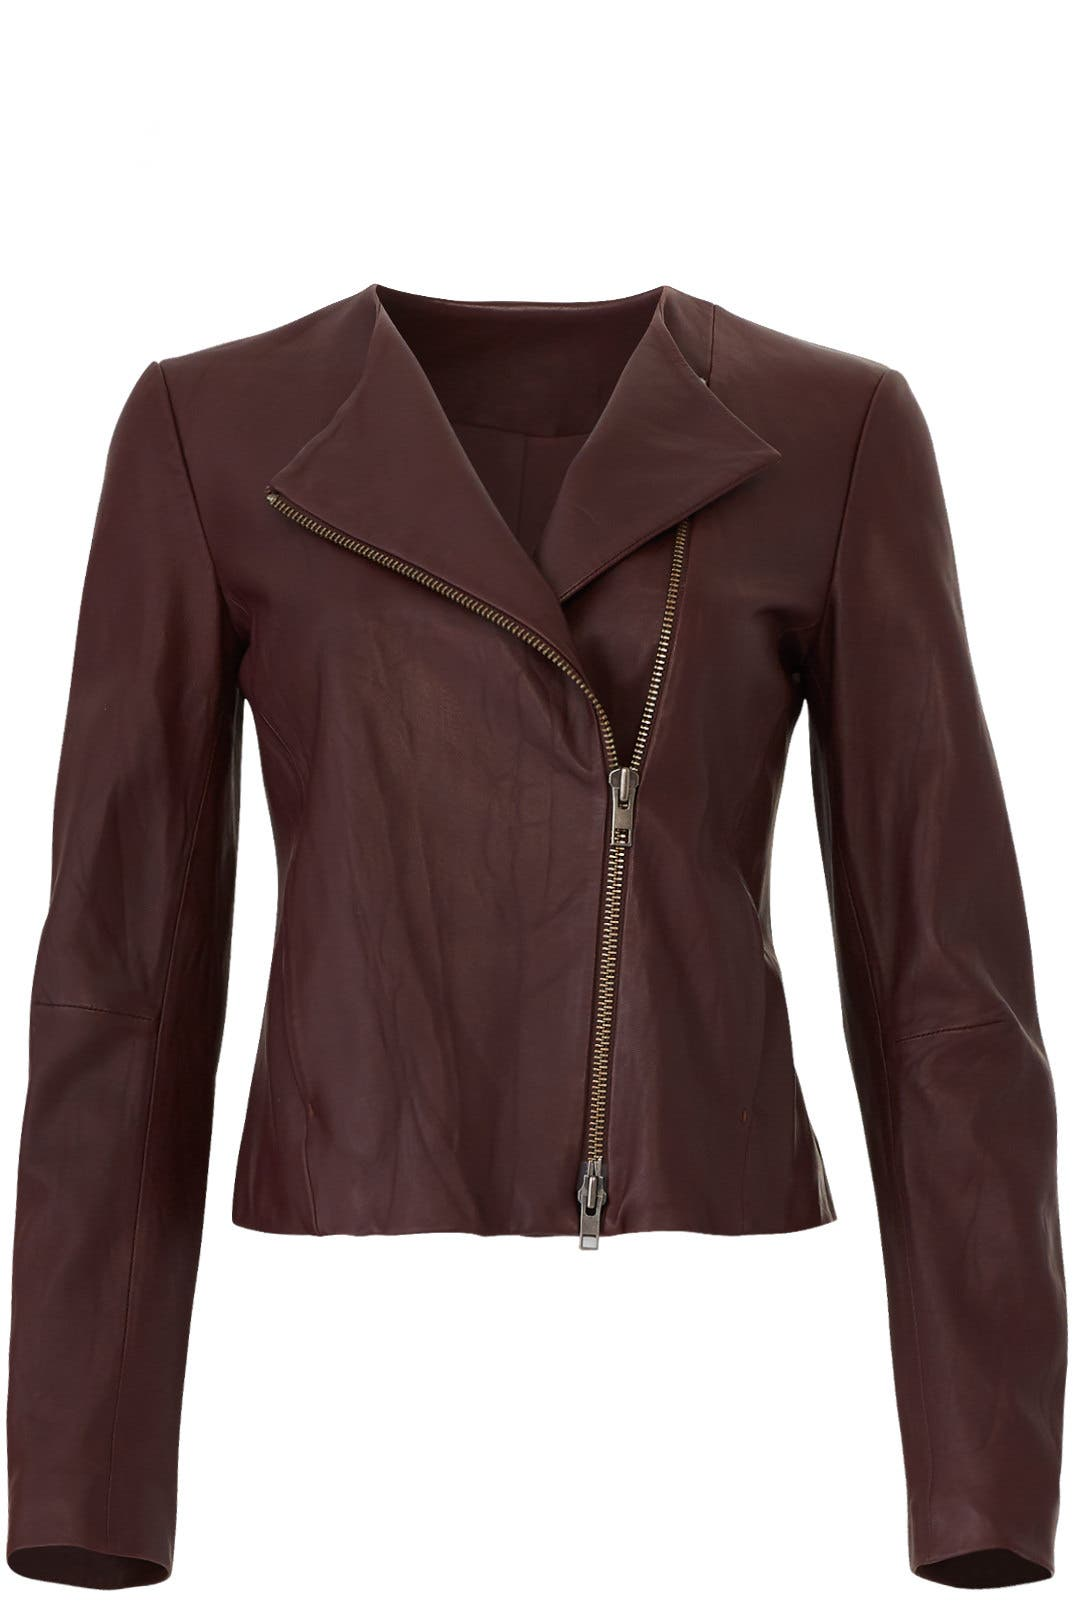 77c999bc5 VINCE. Cross Front Leather Jacket